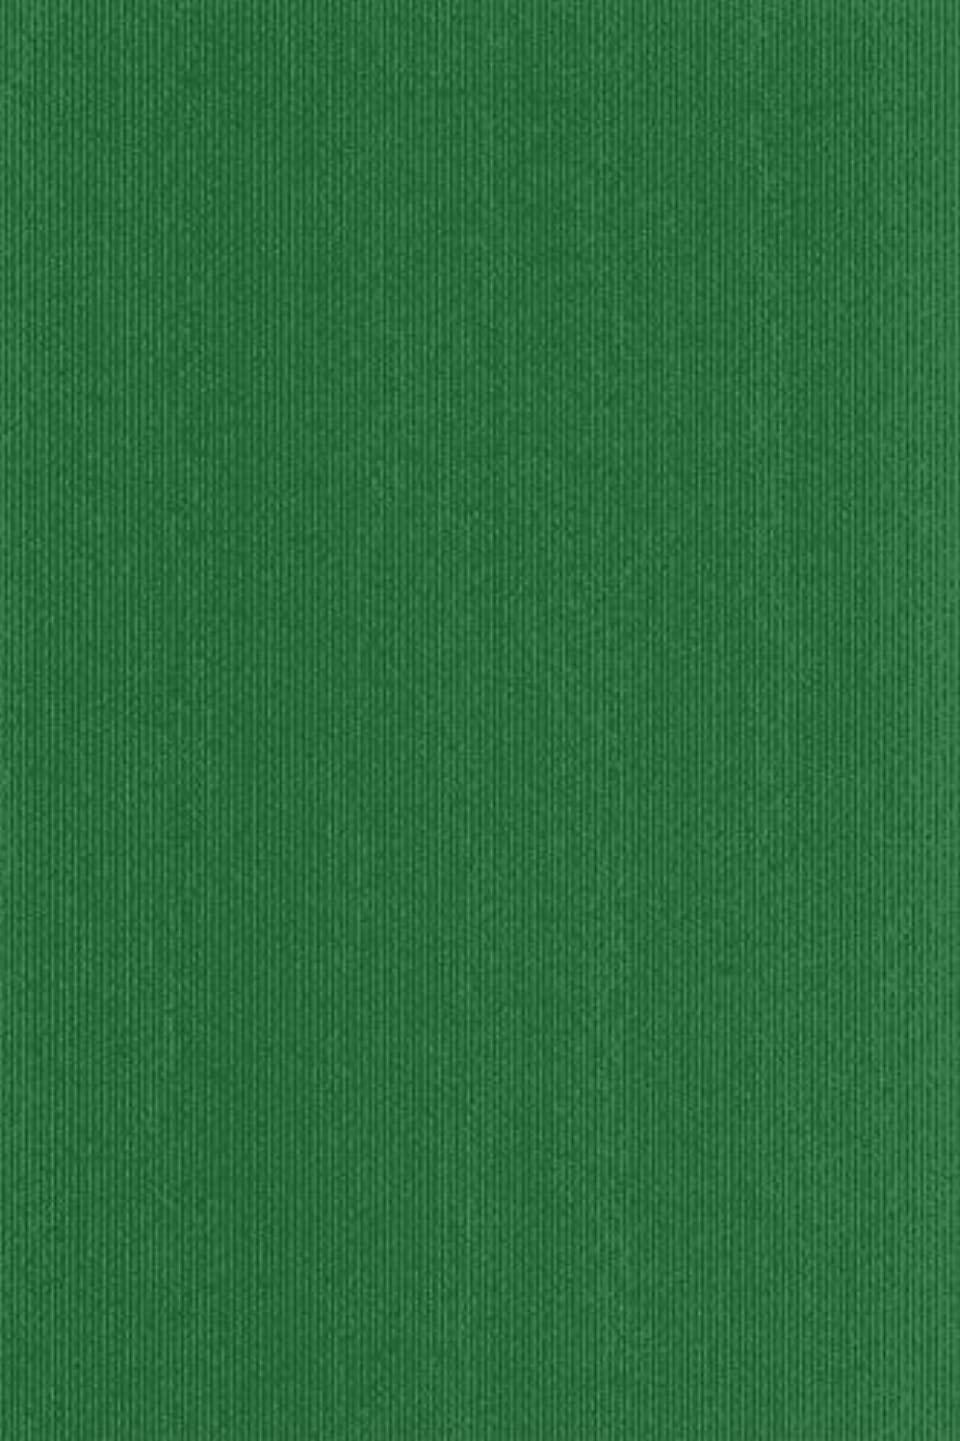 Stewo One Colour Natura?–?Roll Format, 2528895247?Wrapping Paper 70?x 200?cm Dark Green